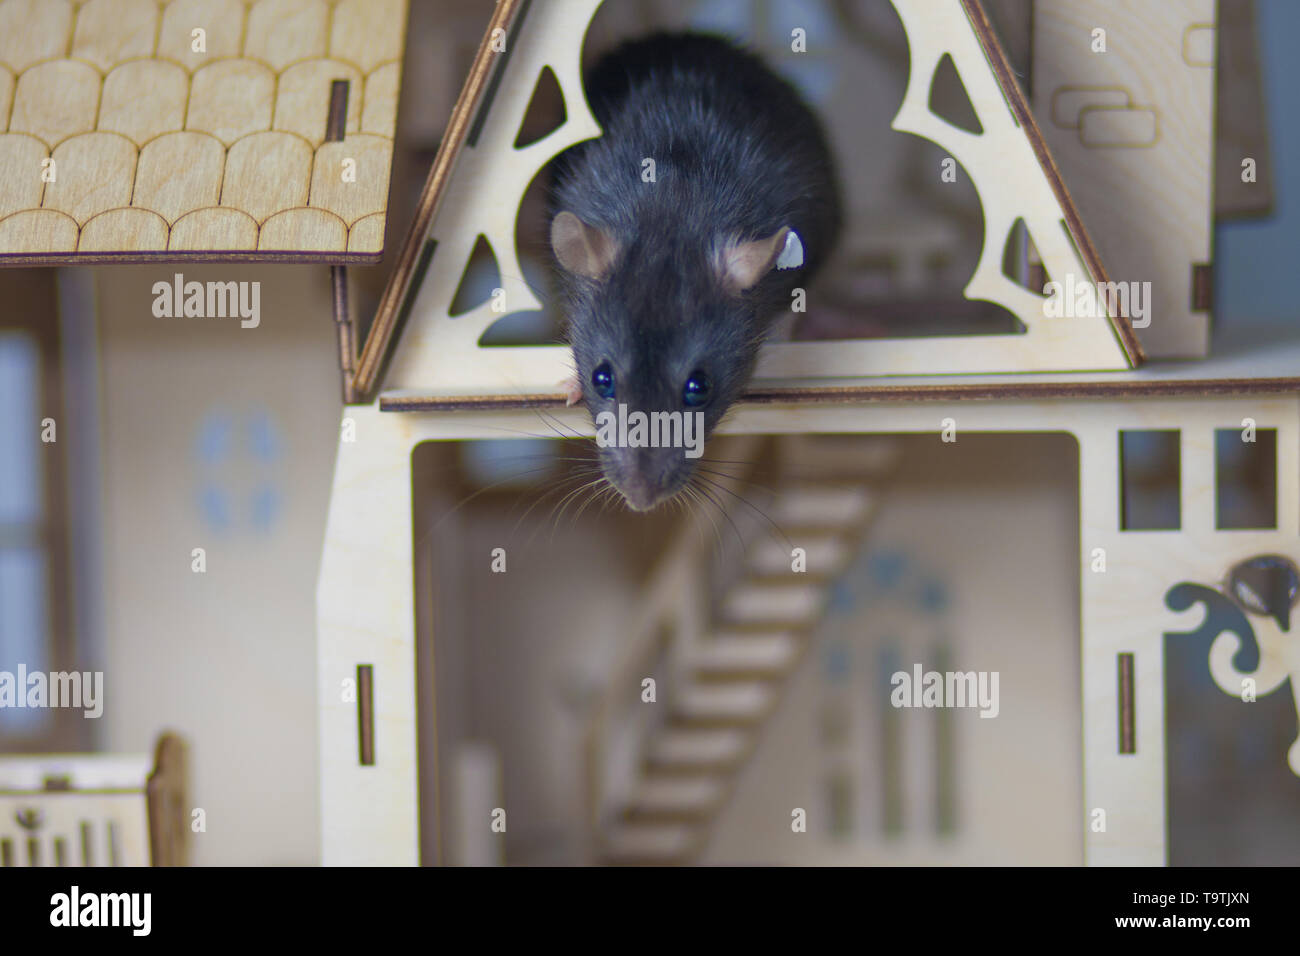 The concept of acrophobia. The gray rat looks down from the roof of the house. The mouse is afraid of heights. - Stock Image